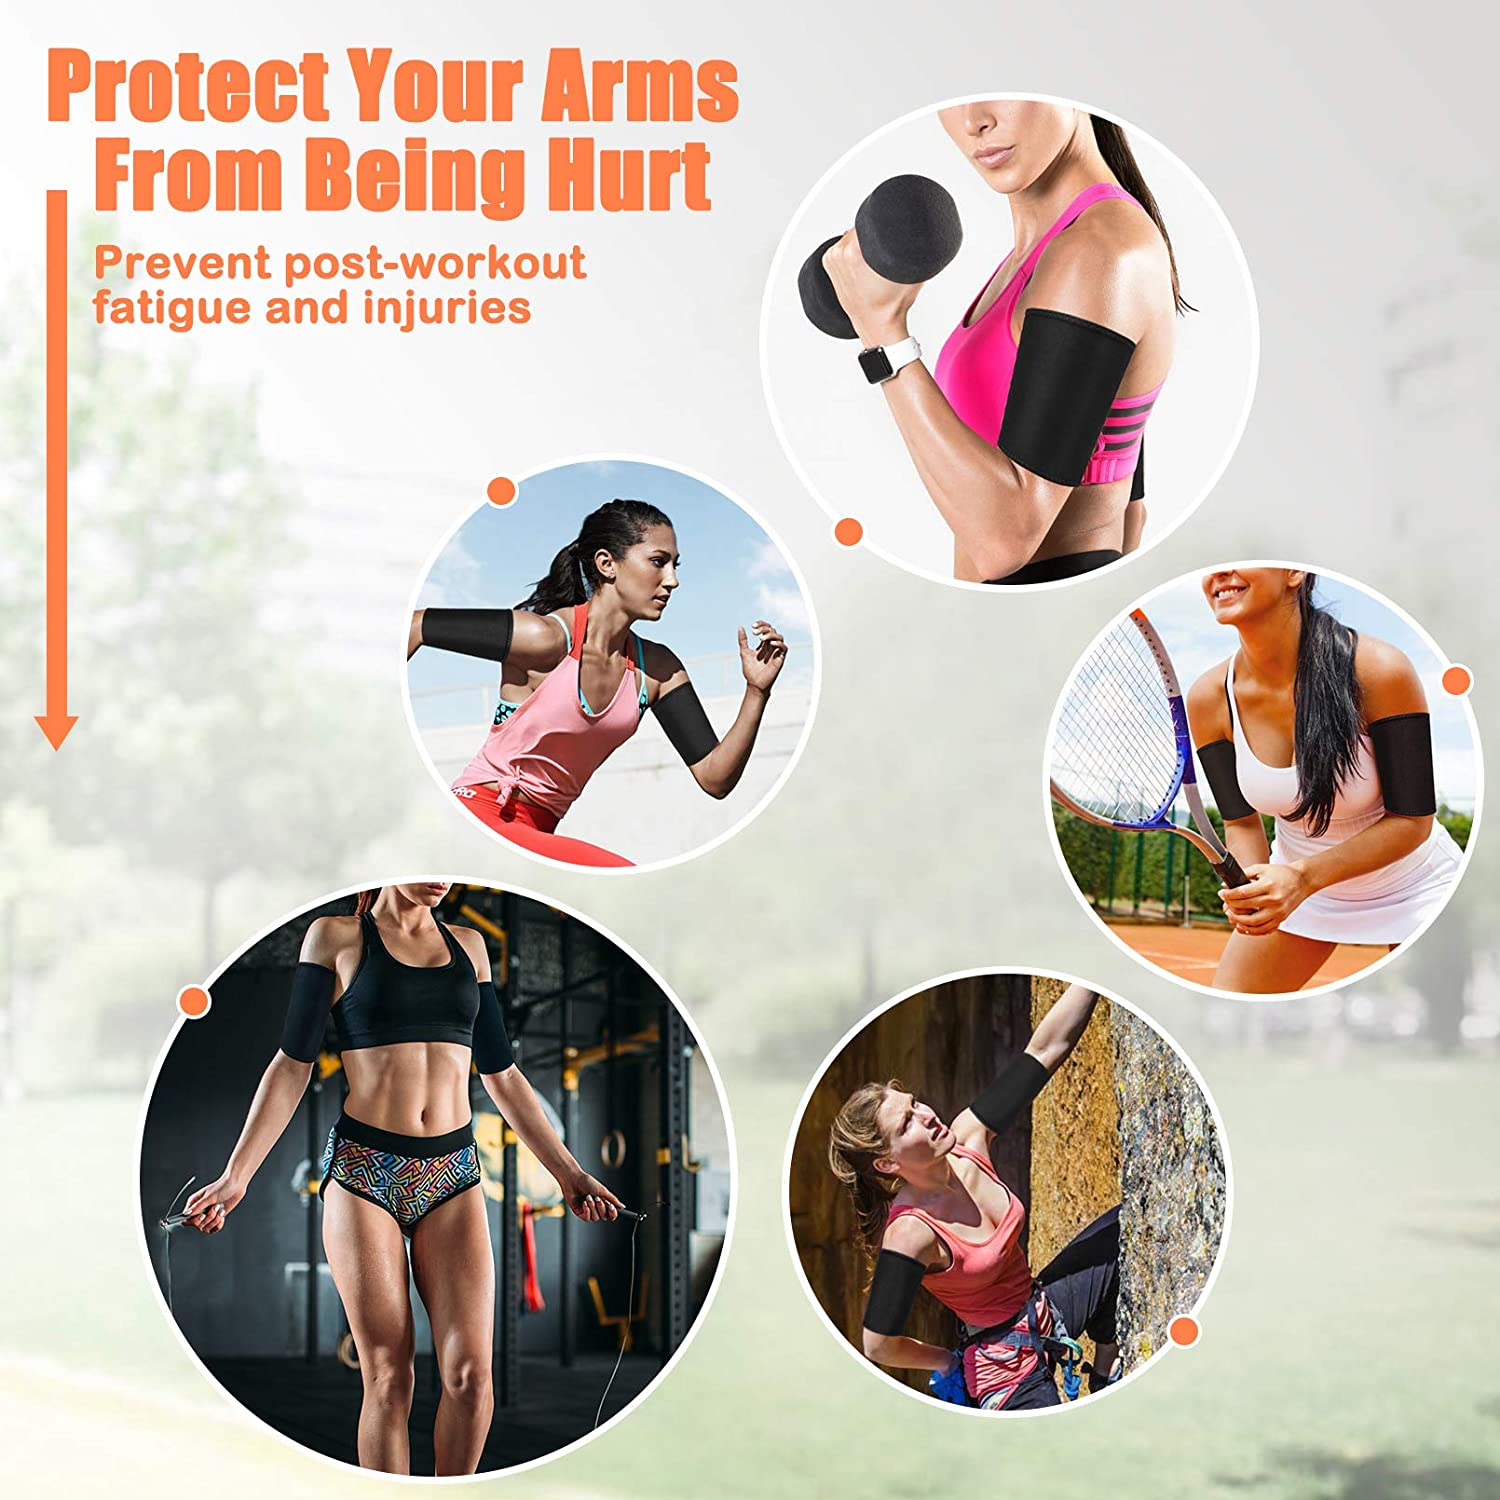 WUQID Arm Weights for Women Flabby Sauna Arm Trimmers Shapers Slimming Lose Arm Fat Arms Accelerate Sweat for Women Men